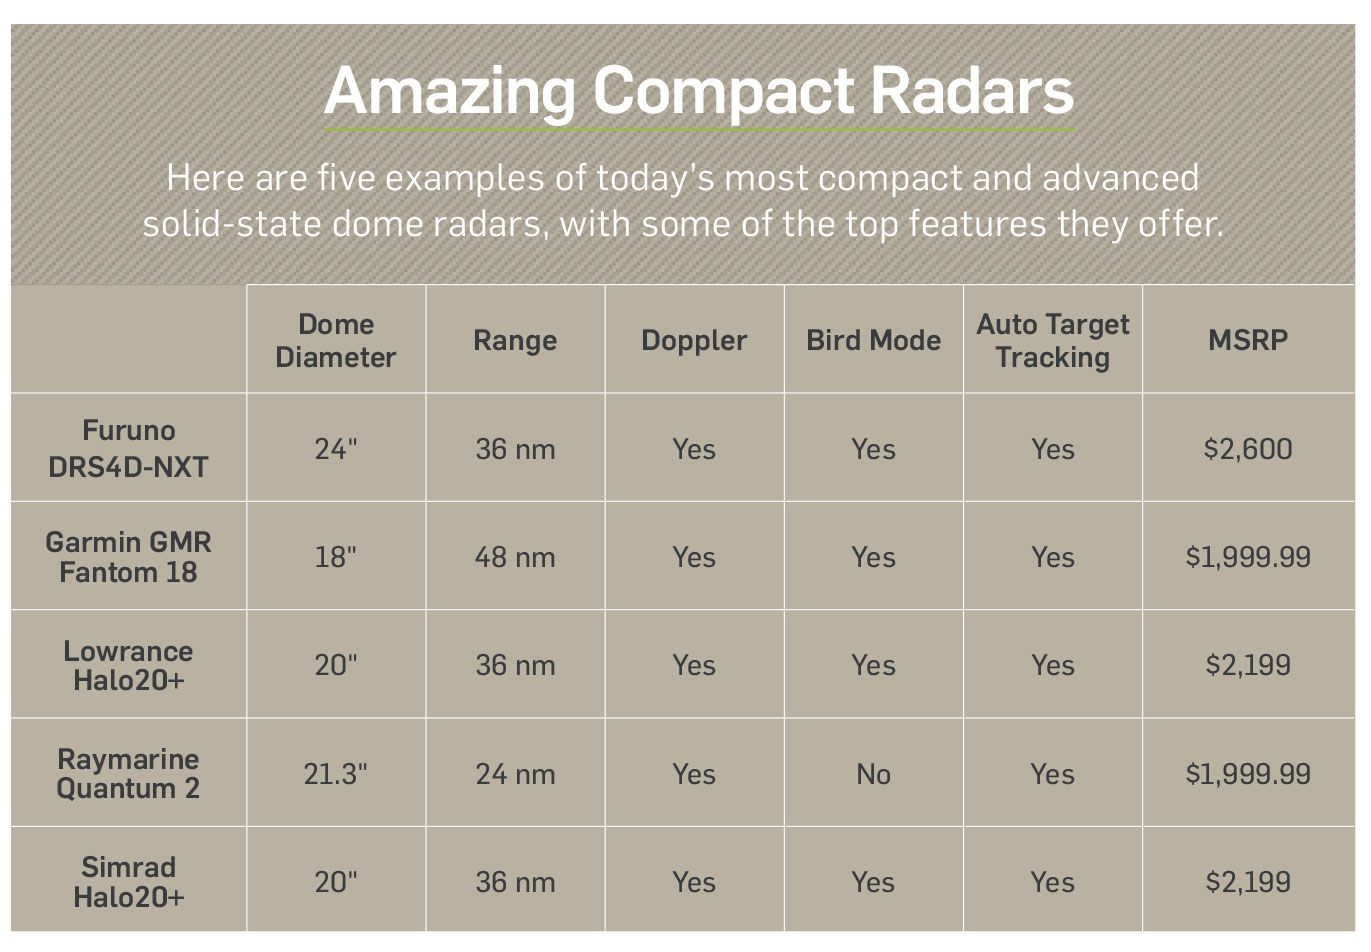 Compact radar units offer some amazing features.